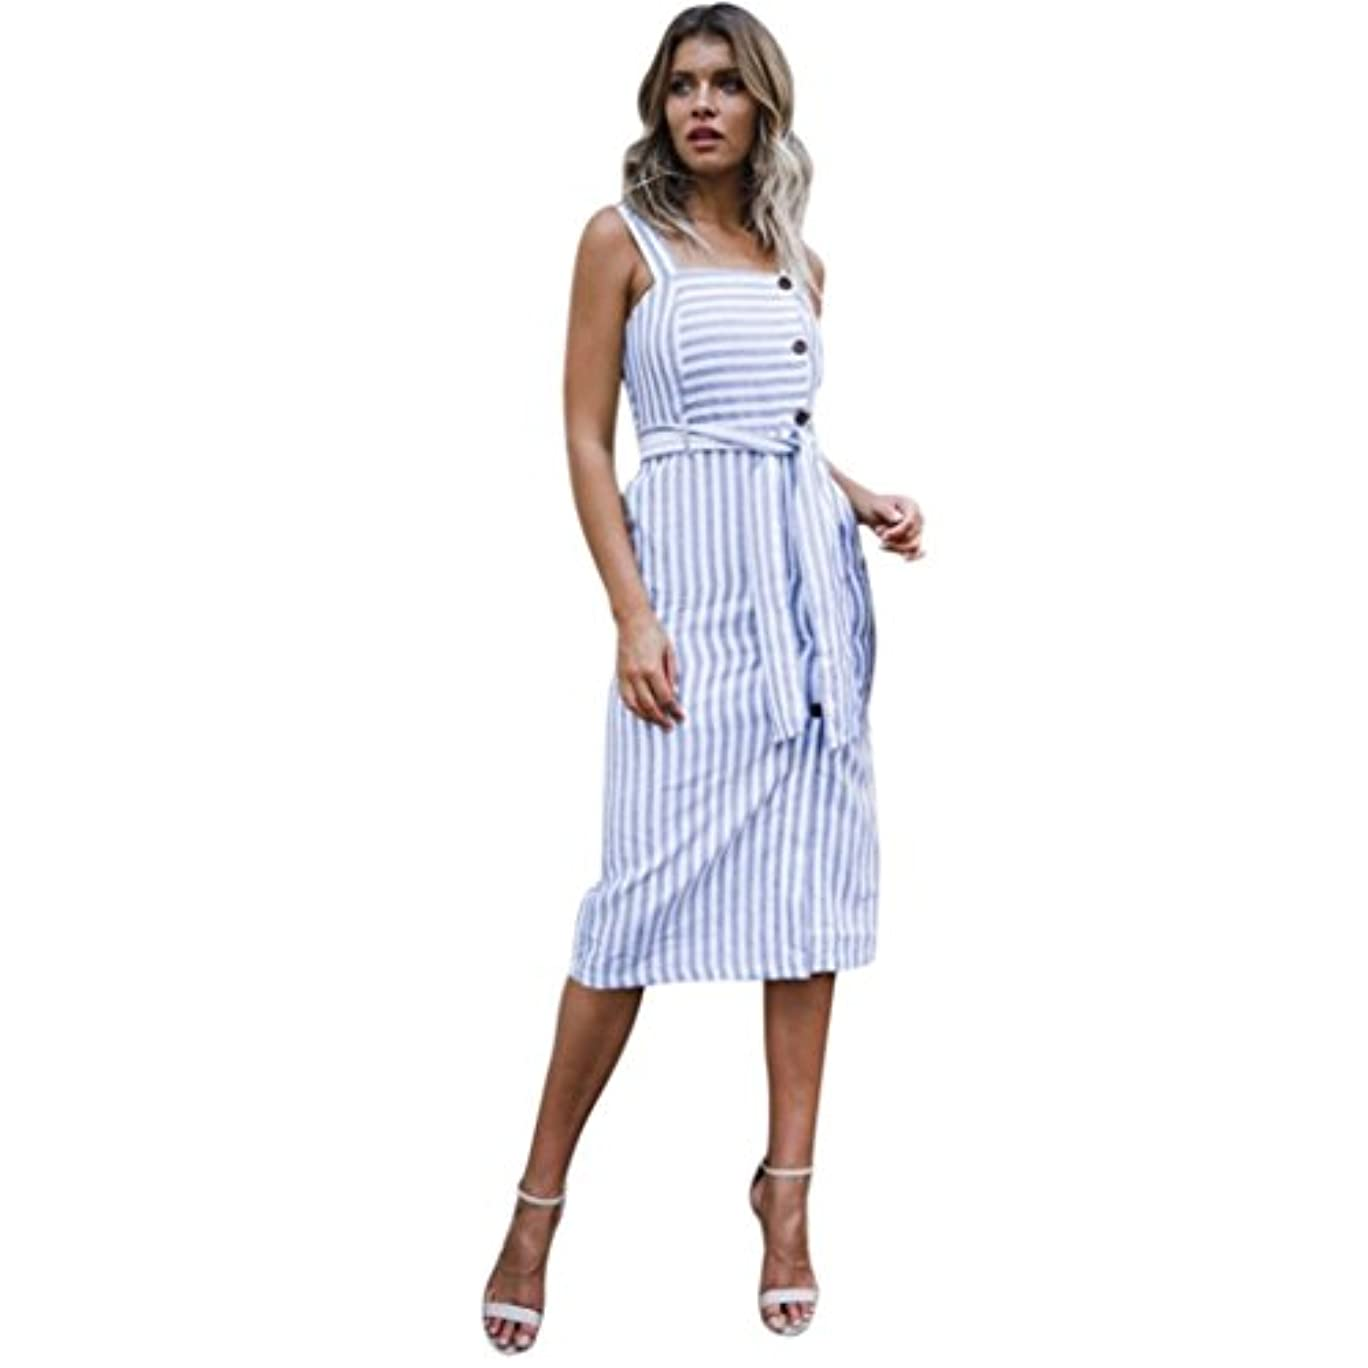 心のこもったラフ睡眠満了SakuraBest Womens Summer Striped Button Down Dress,Shoulder Strap Knee-Length Dress for Girls (M)